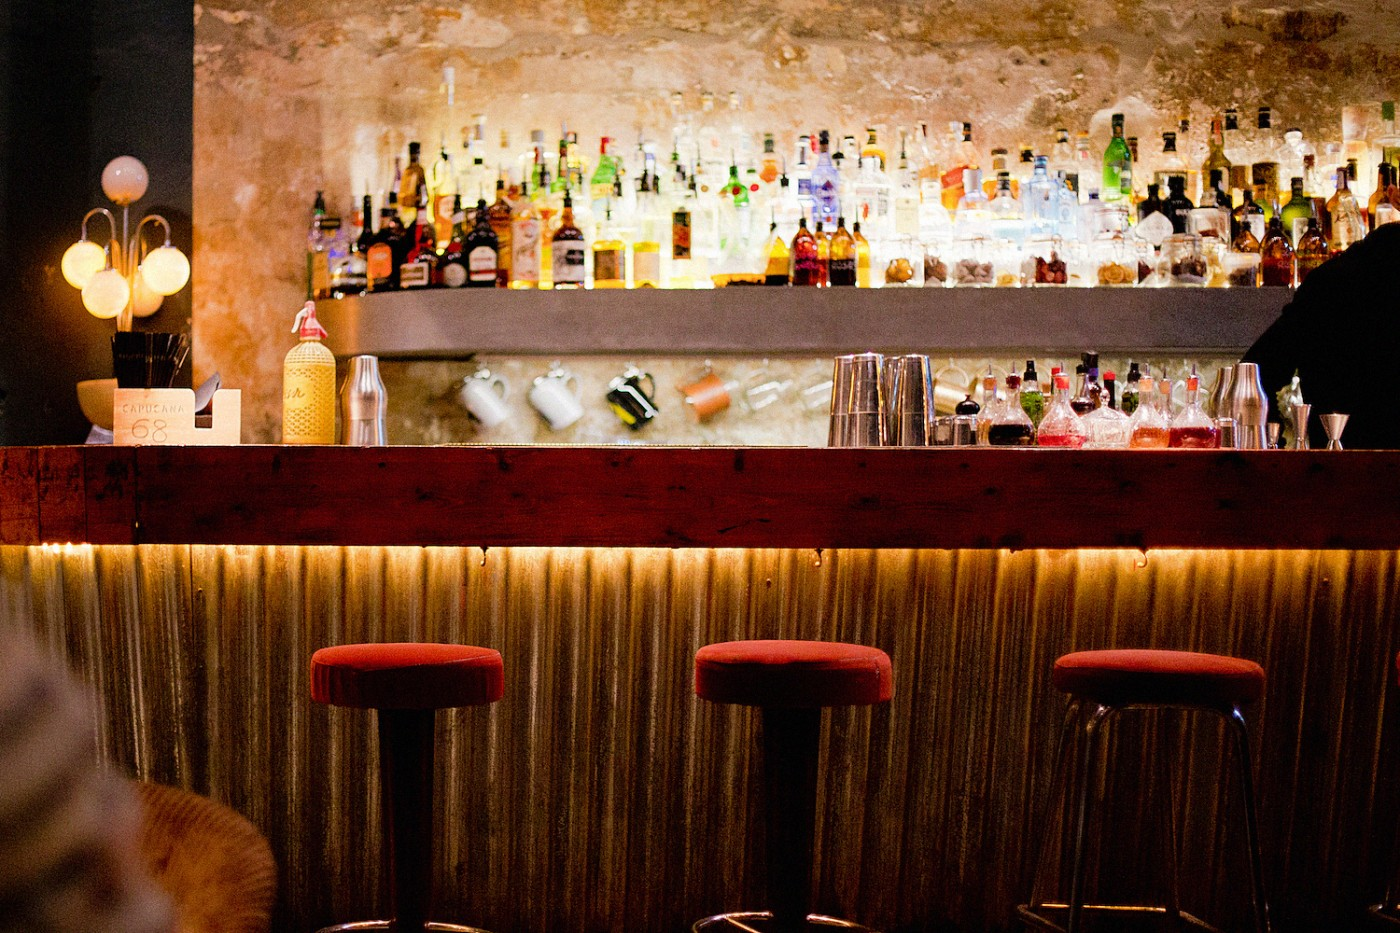 Barcelona Food Guide, Bar 68 barcelona food, eating in Barcelona, restaurant guide for Barcelona,